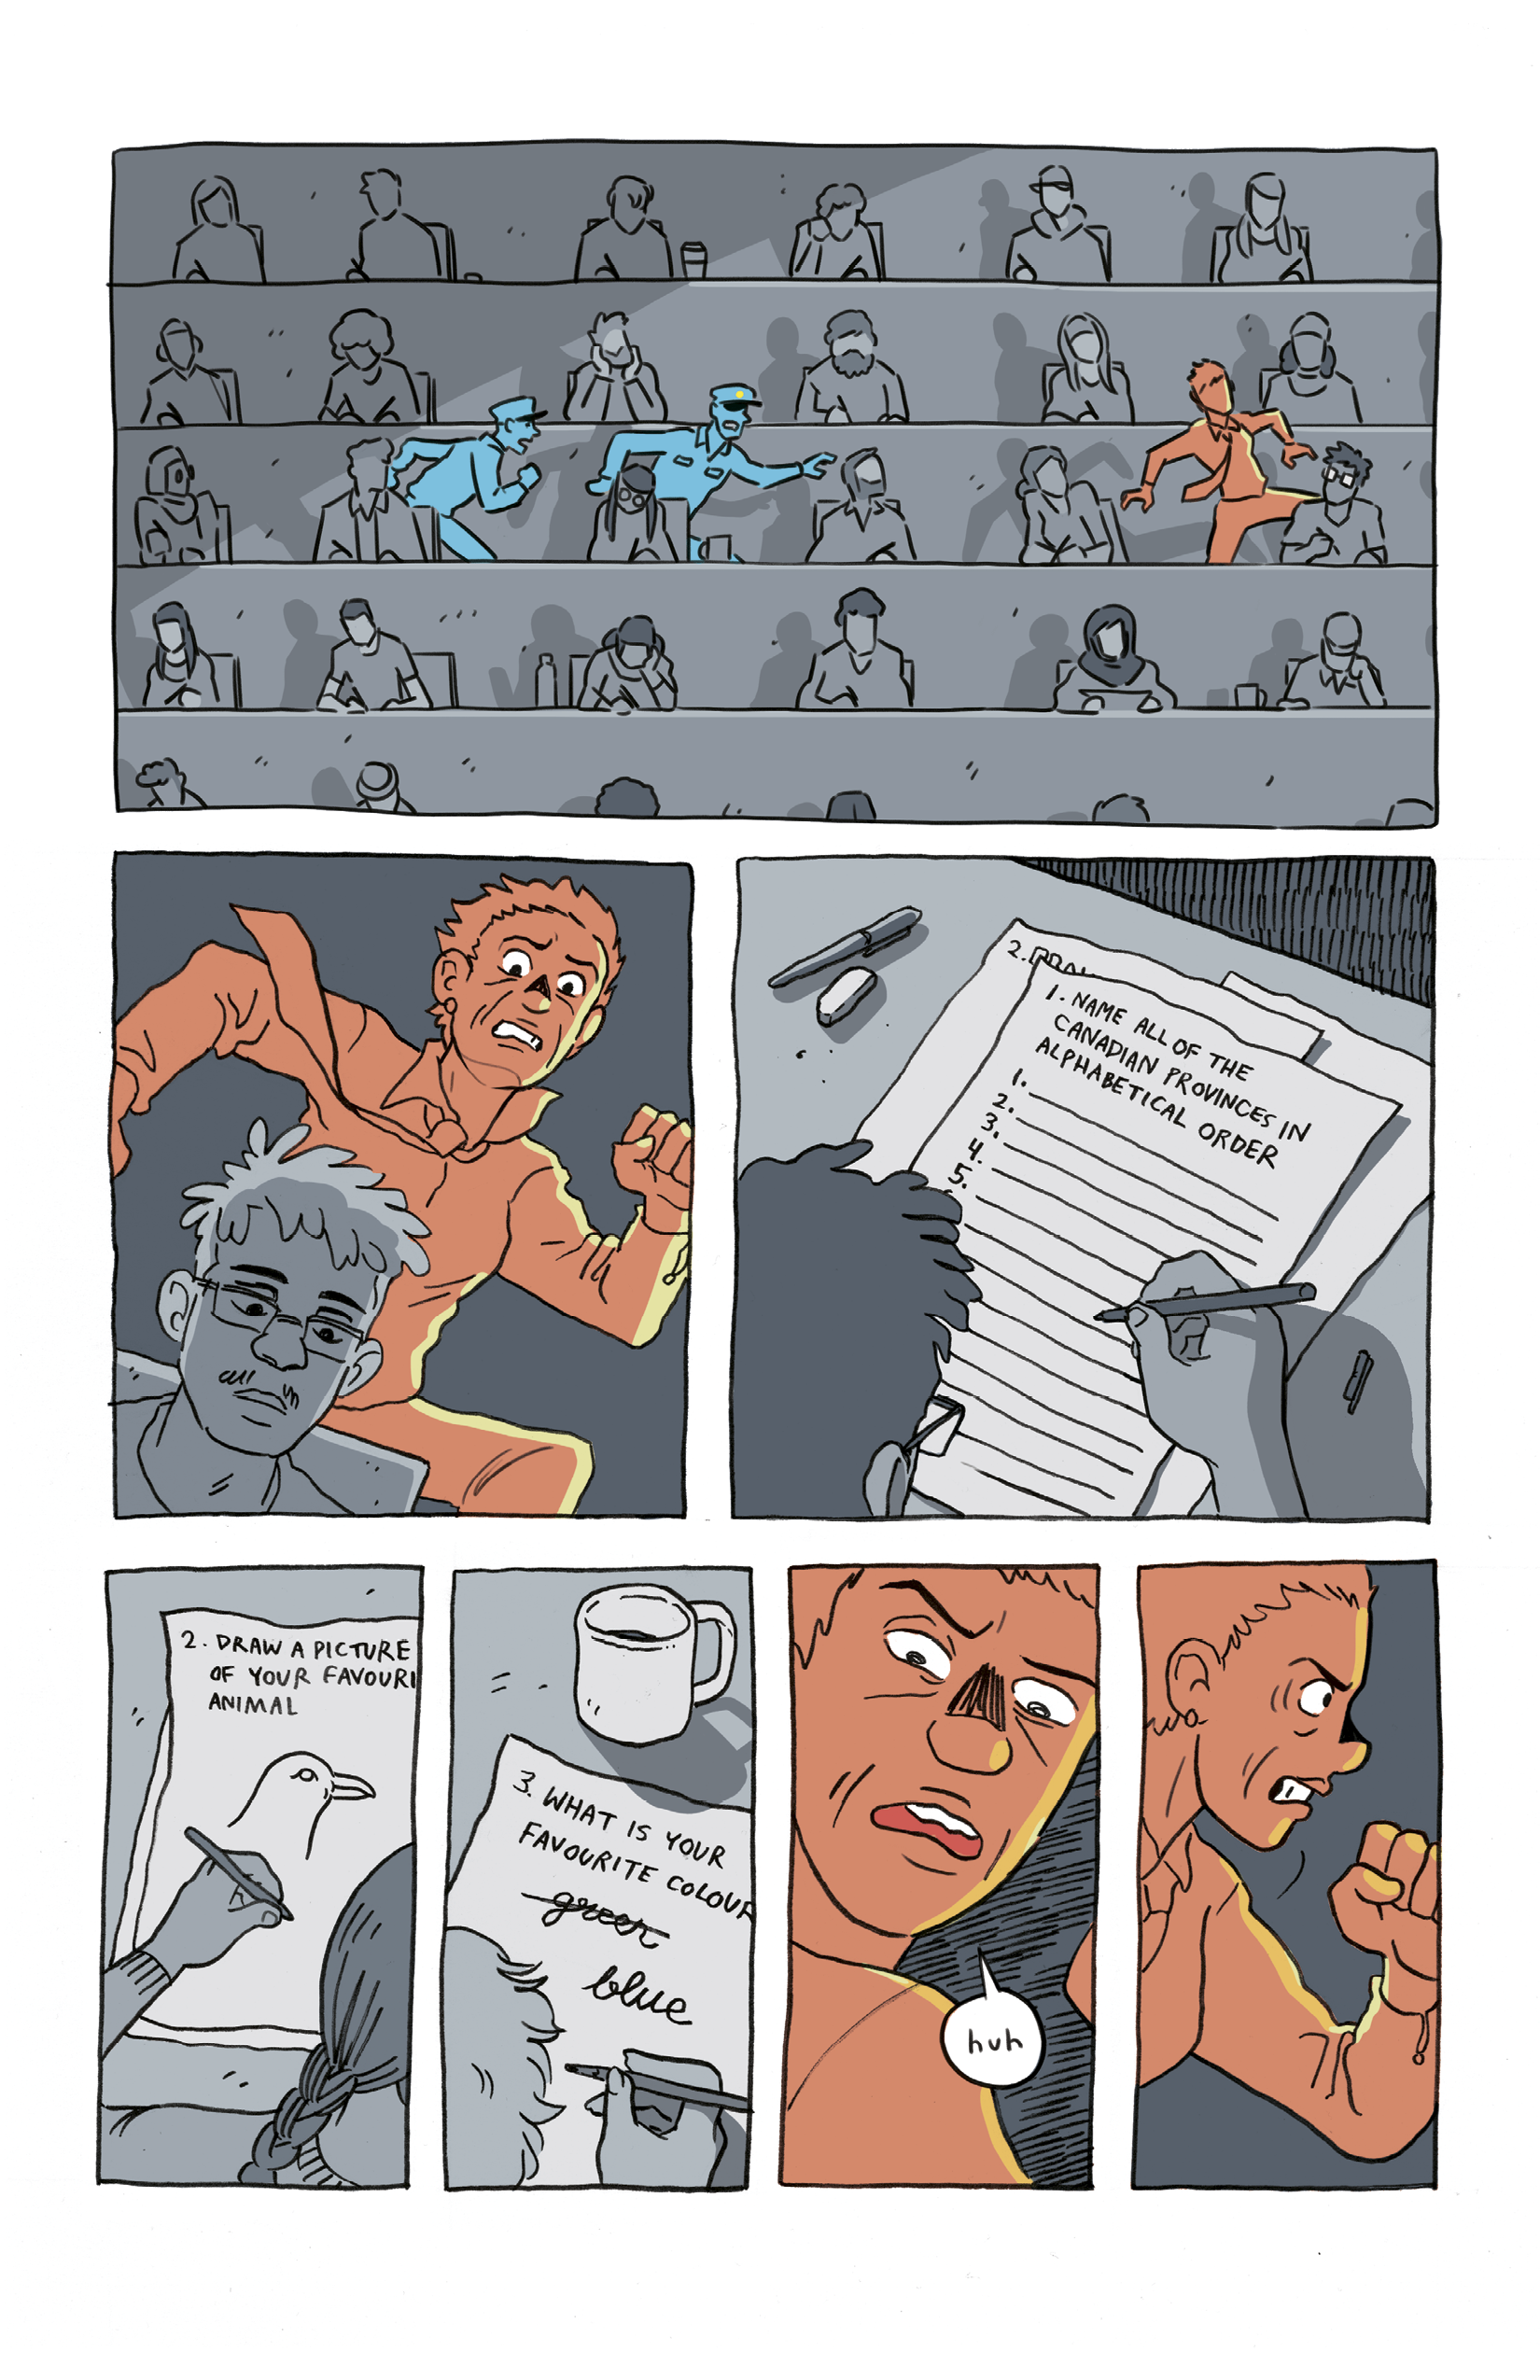 METANOIA_final_001_single_pages9.png